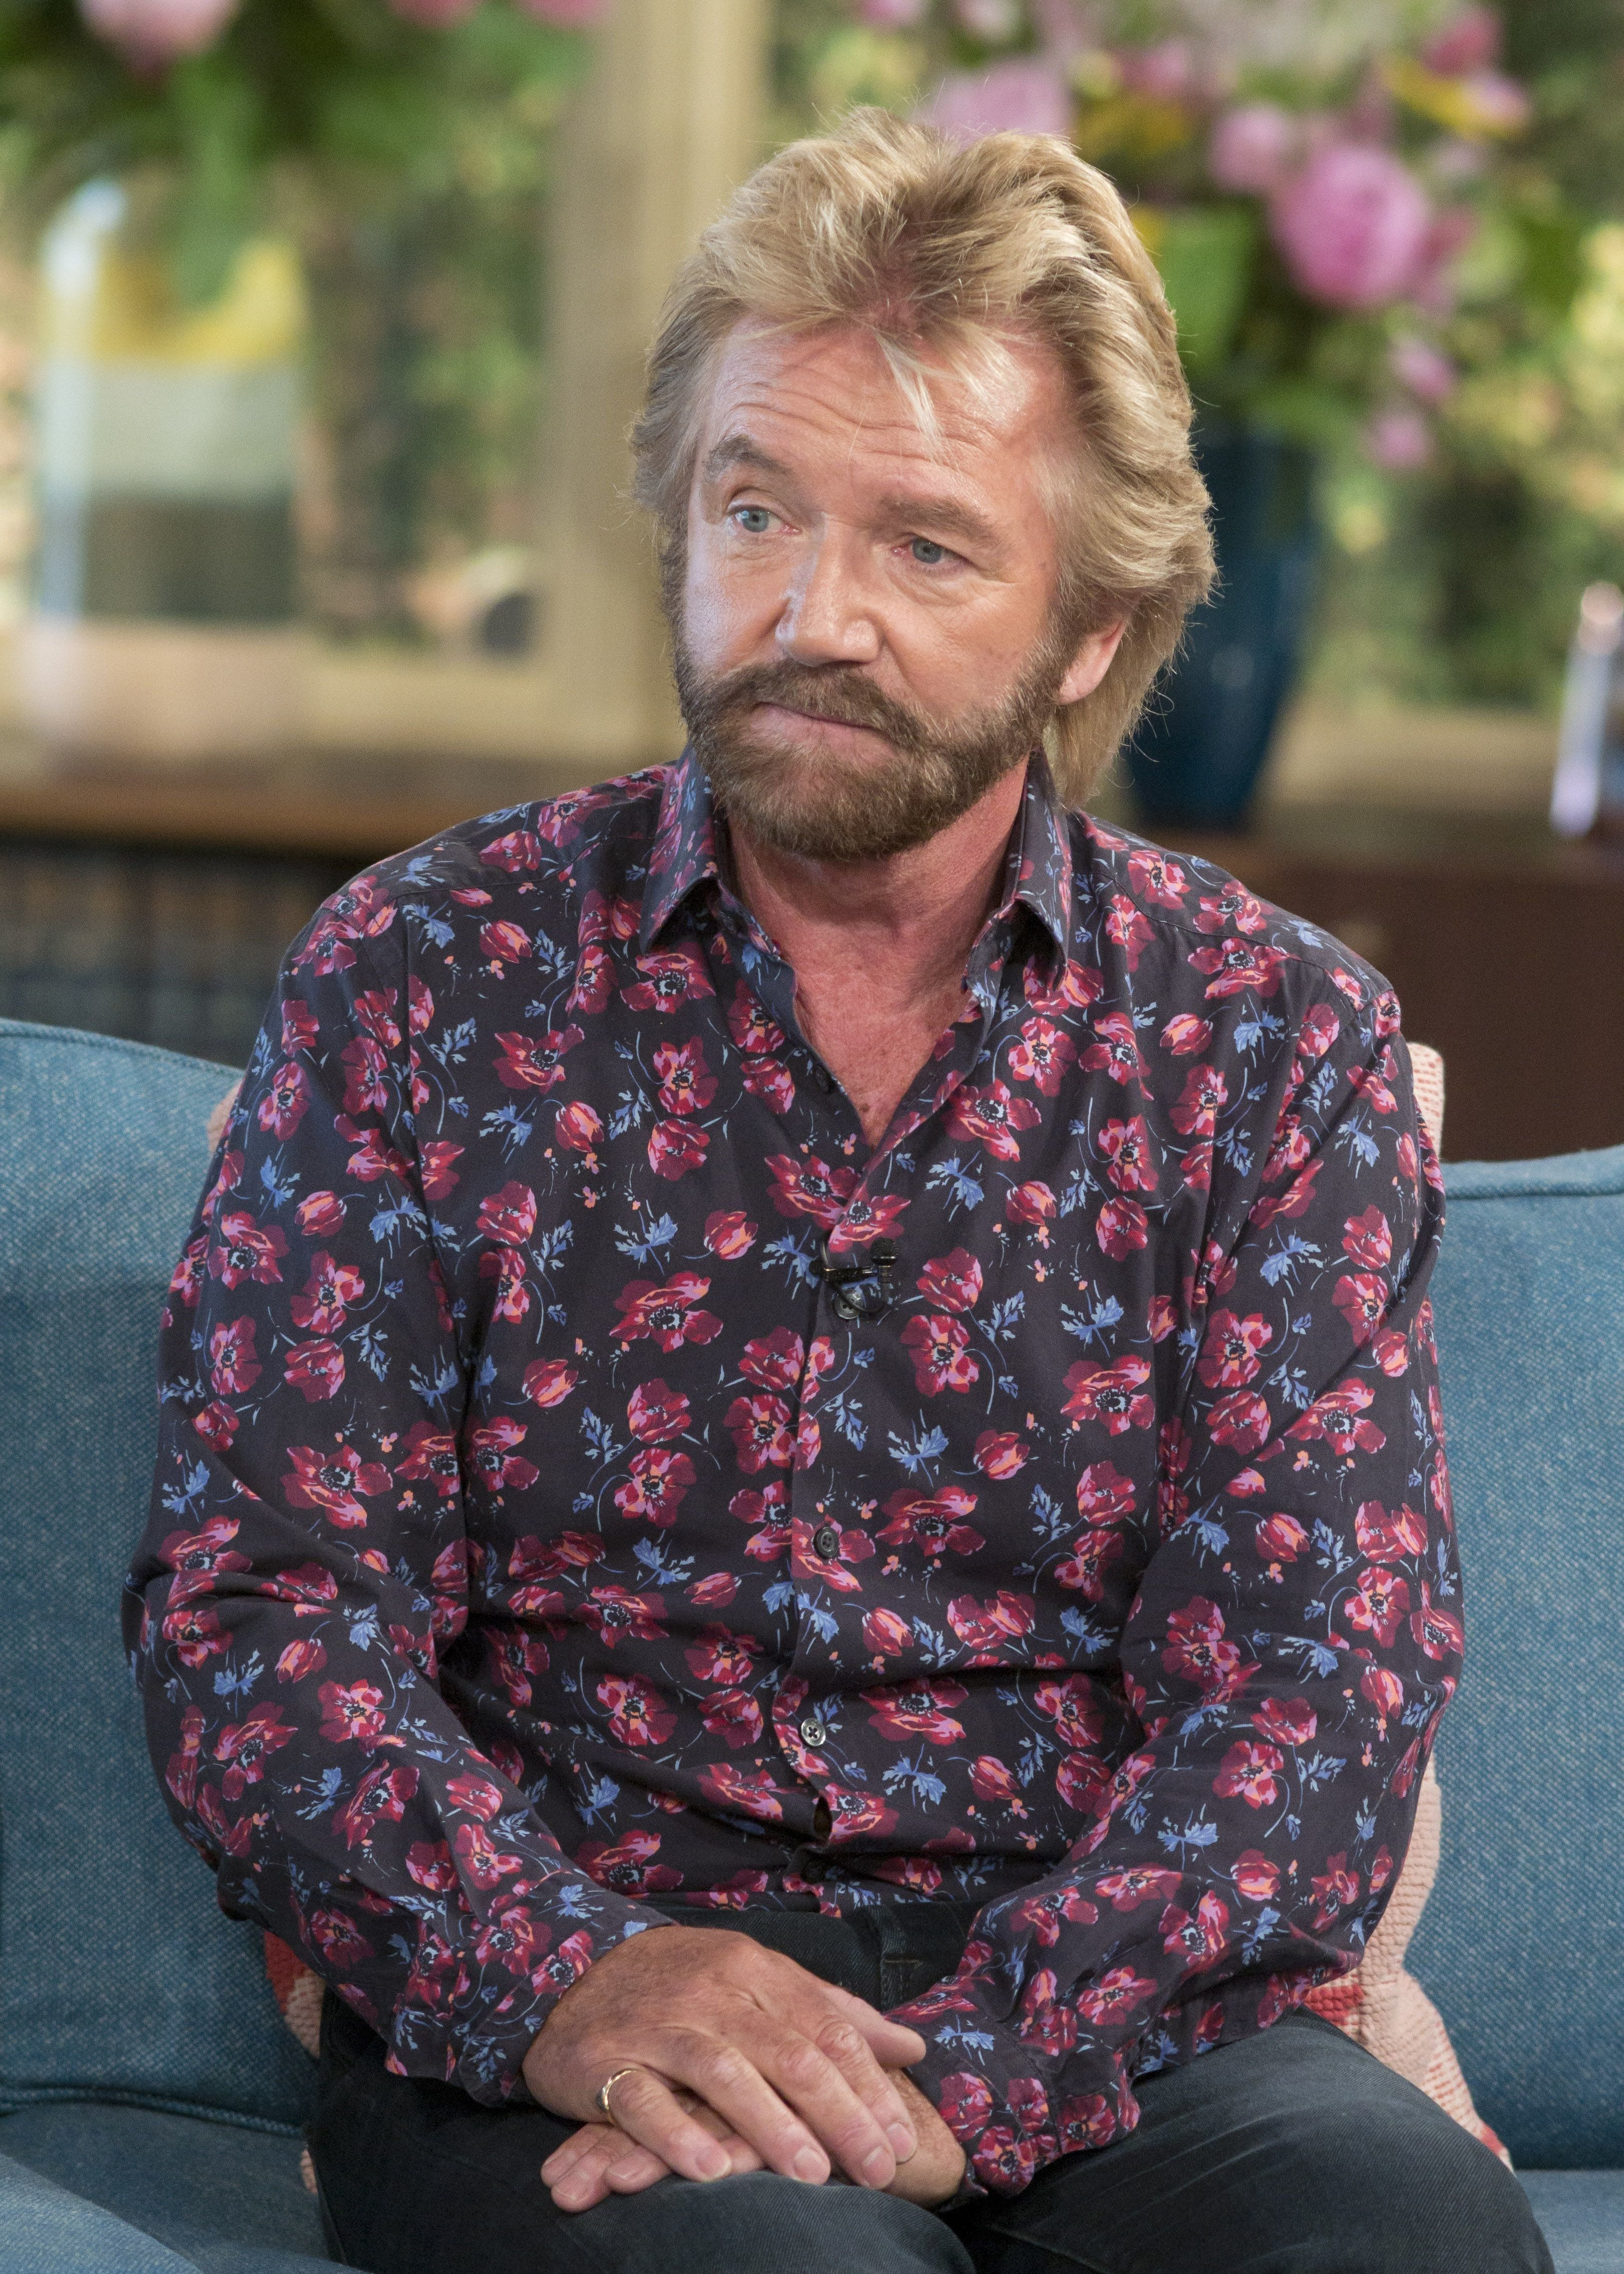 Noel Edmonds Reveals He Attempted Suicide After Being Targeted By HBOS Fraudsters